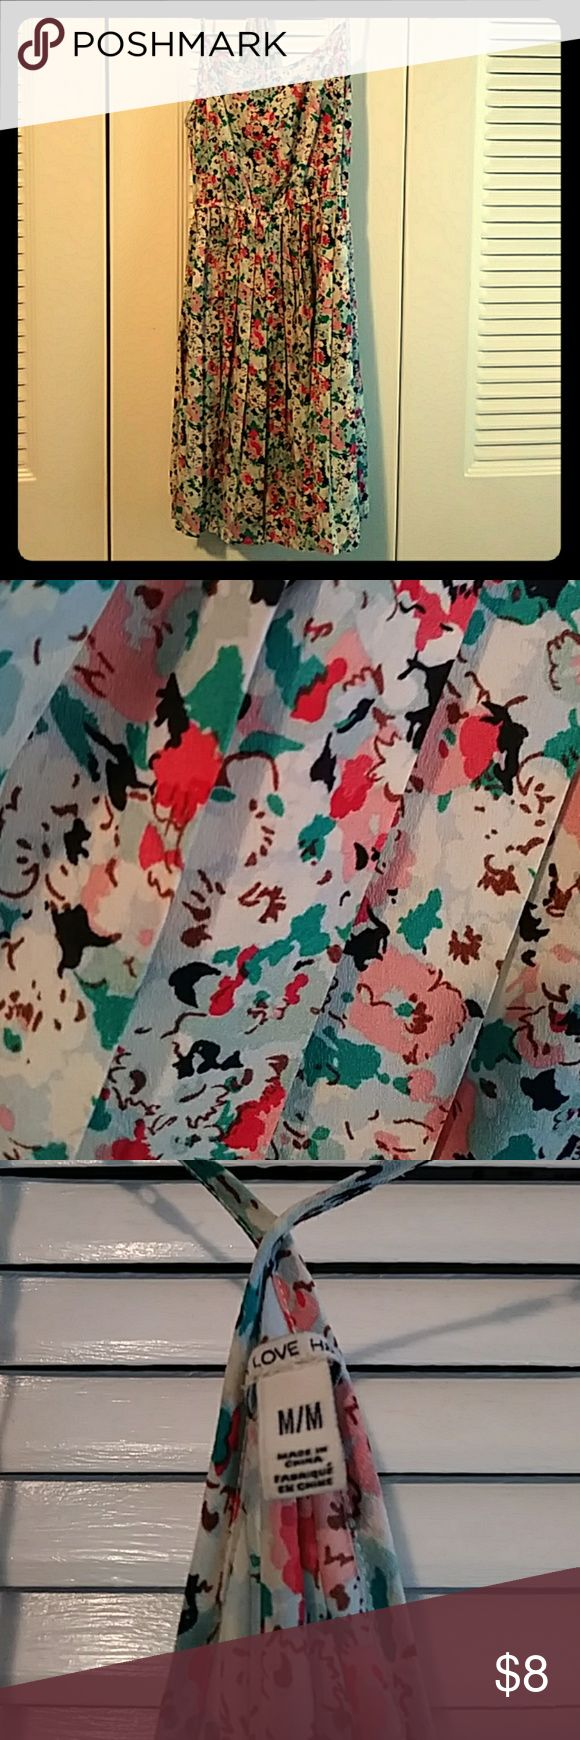 Floral Dress Beautiful light weight fit and flare dress. Great vibrant colors. Cute for date night or just a weekend. This was too small for me. Forever 21 Dresses Mini